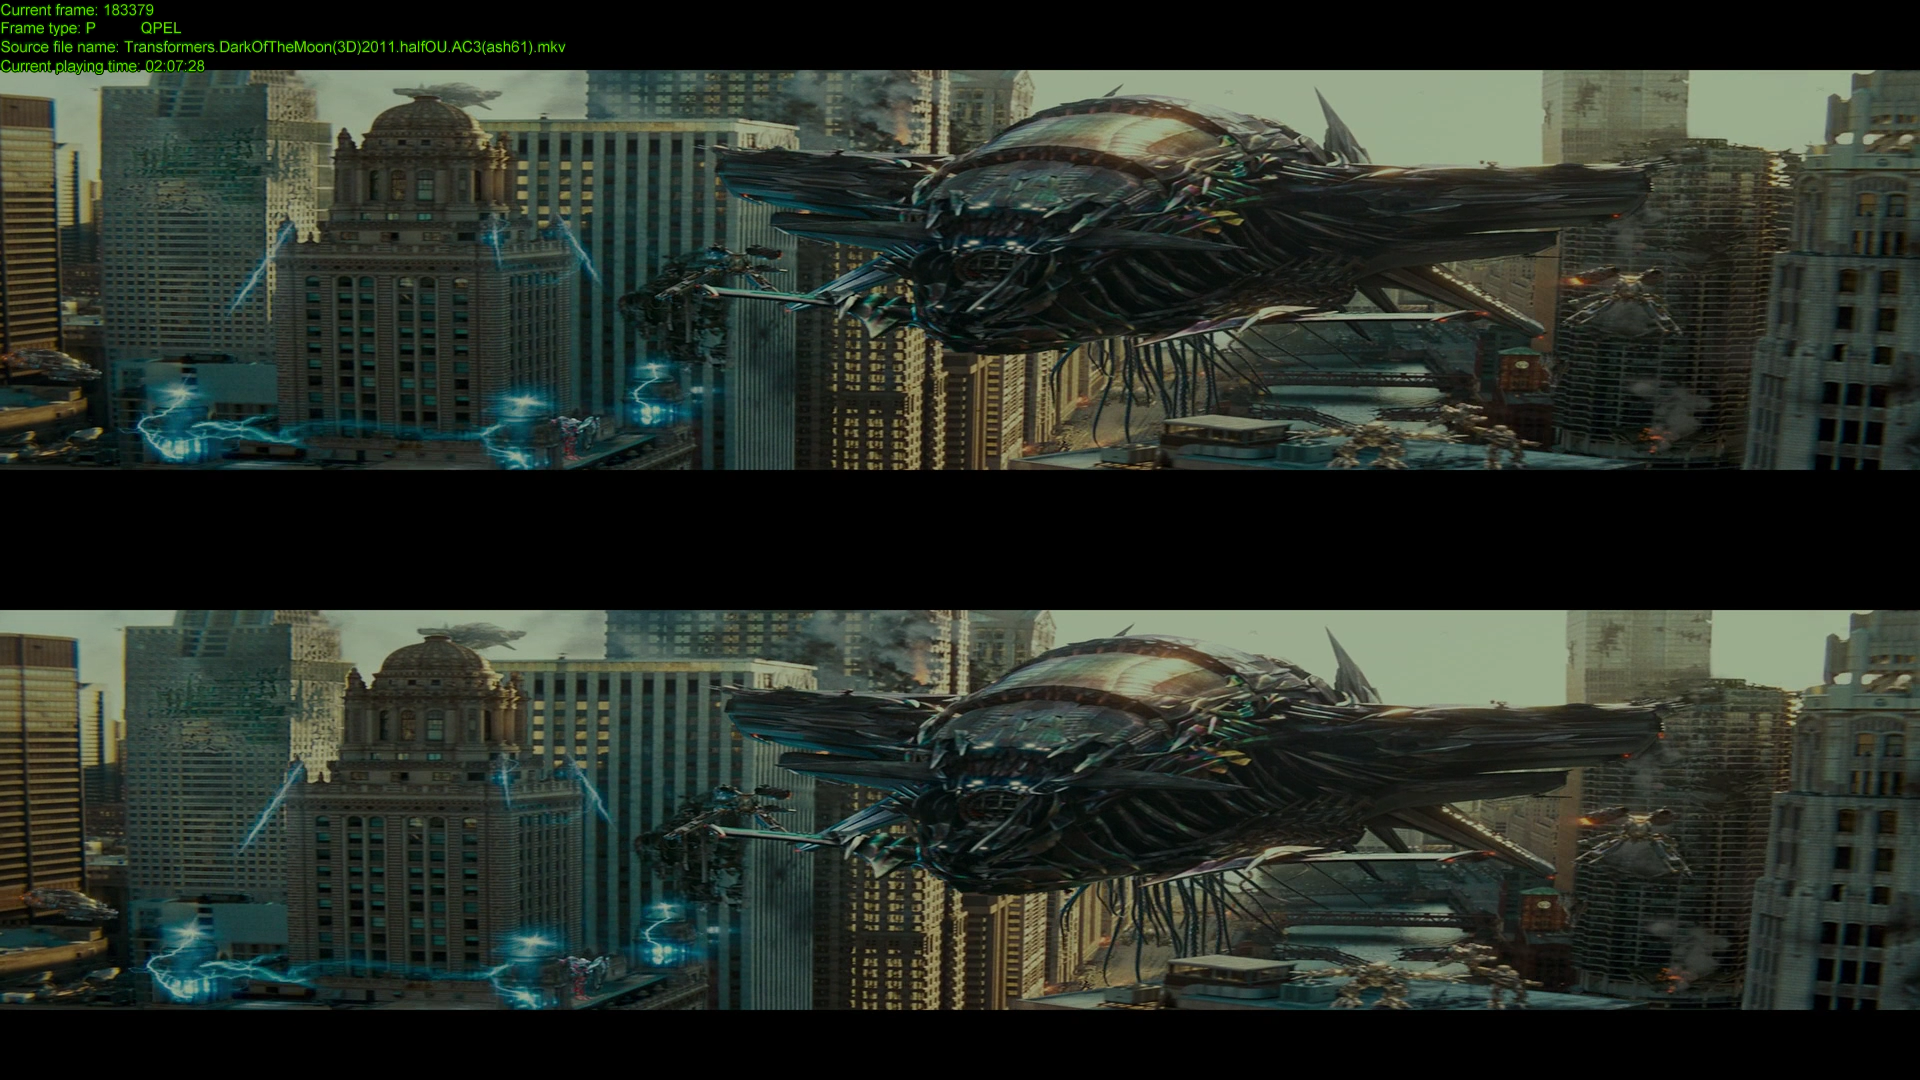 Transformers3-14.png